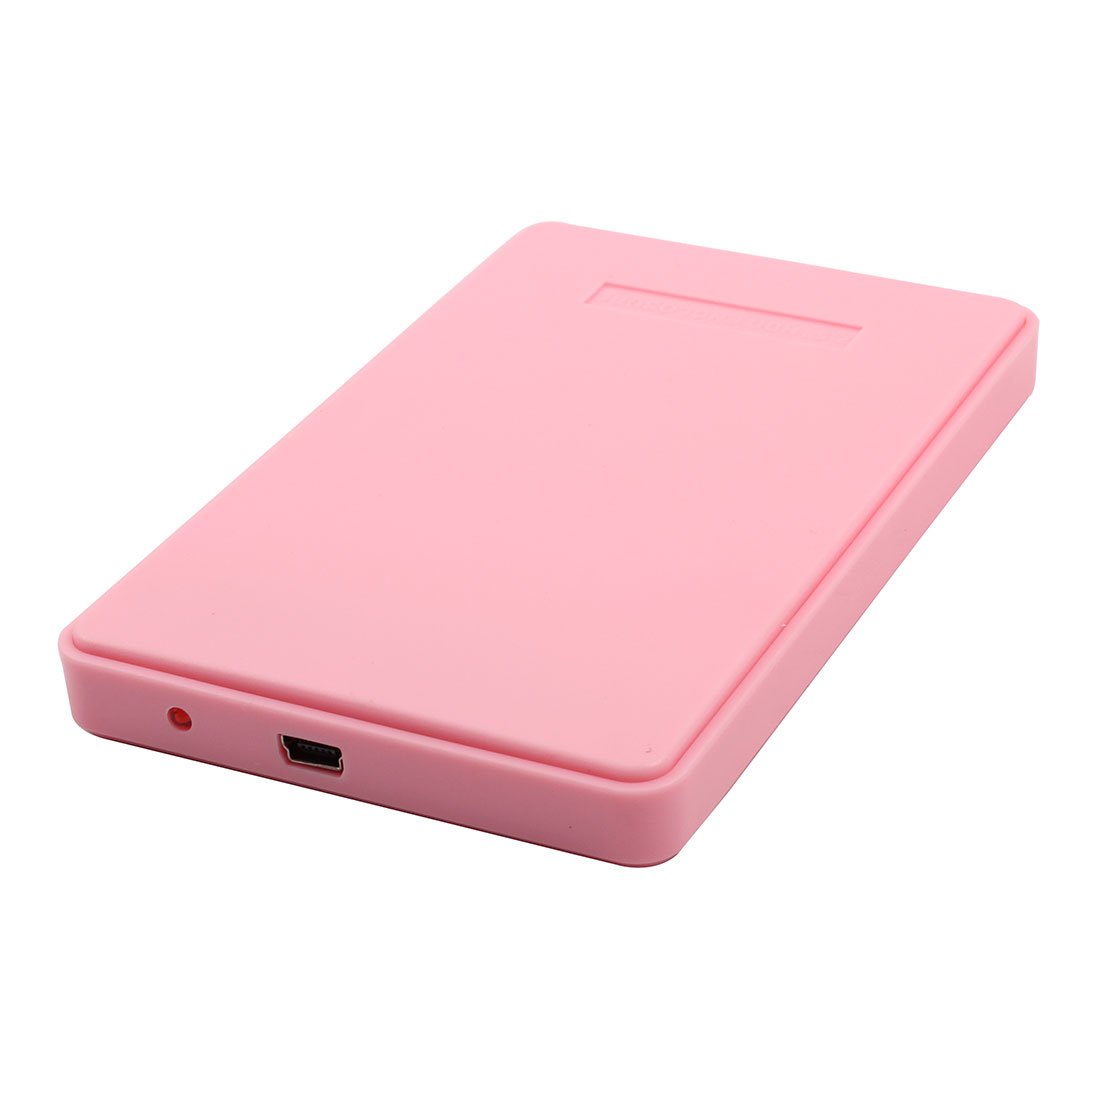 Laptop USB 2.0 Hard Drive Disk Plastic Enclosure External 2.5 Inch Sata HDD Case Pink